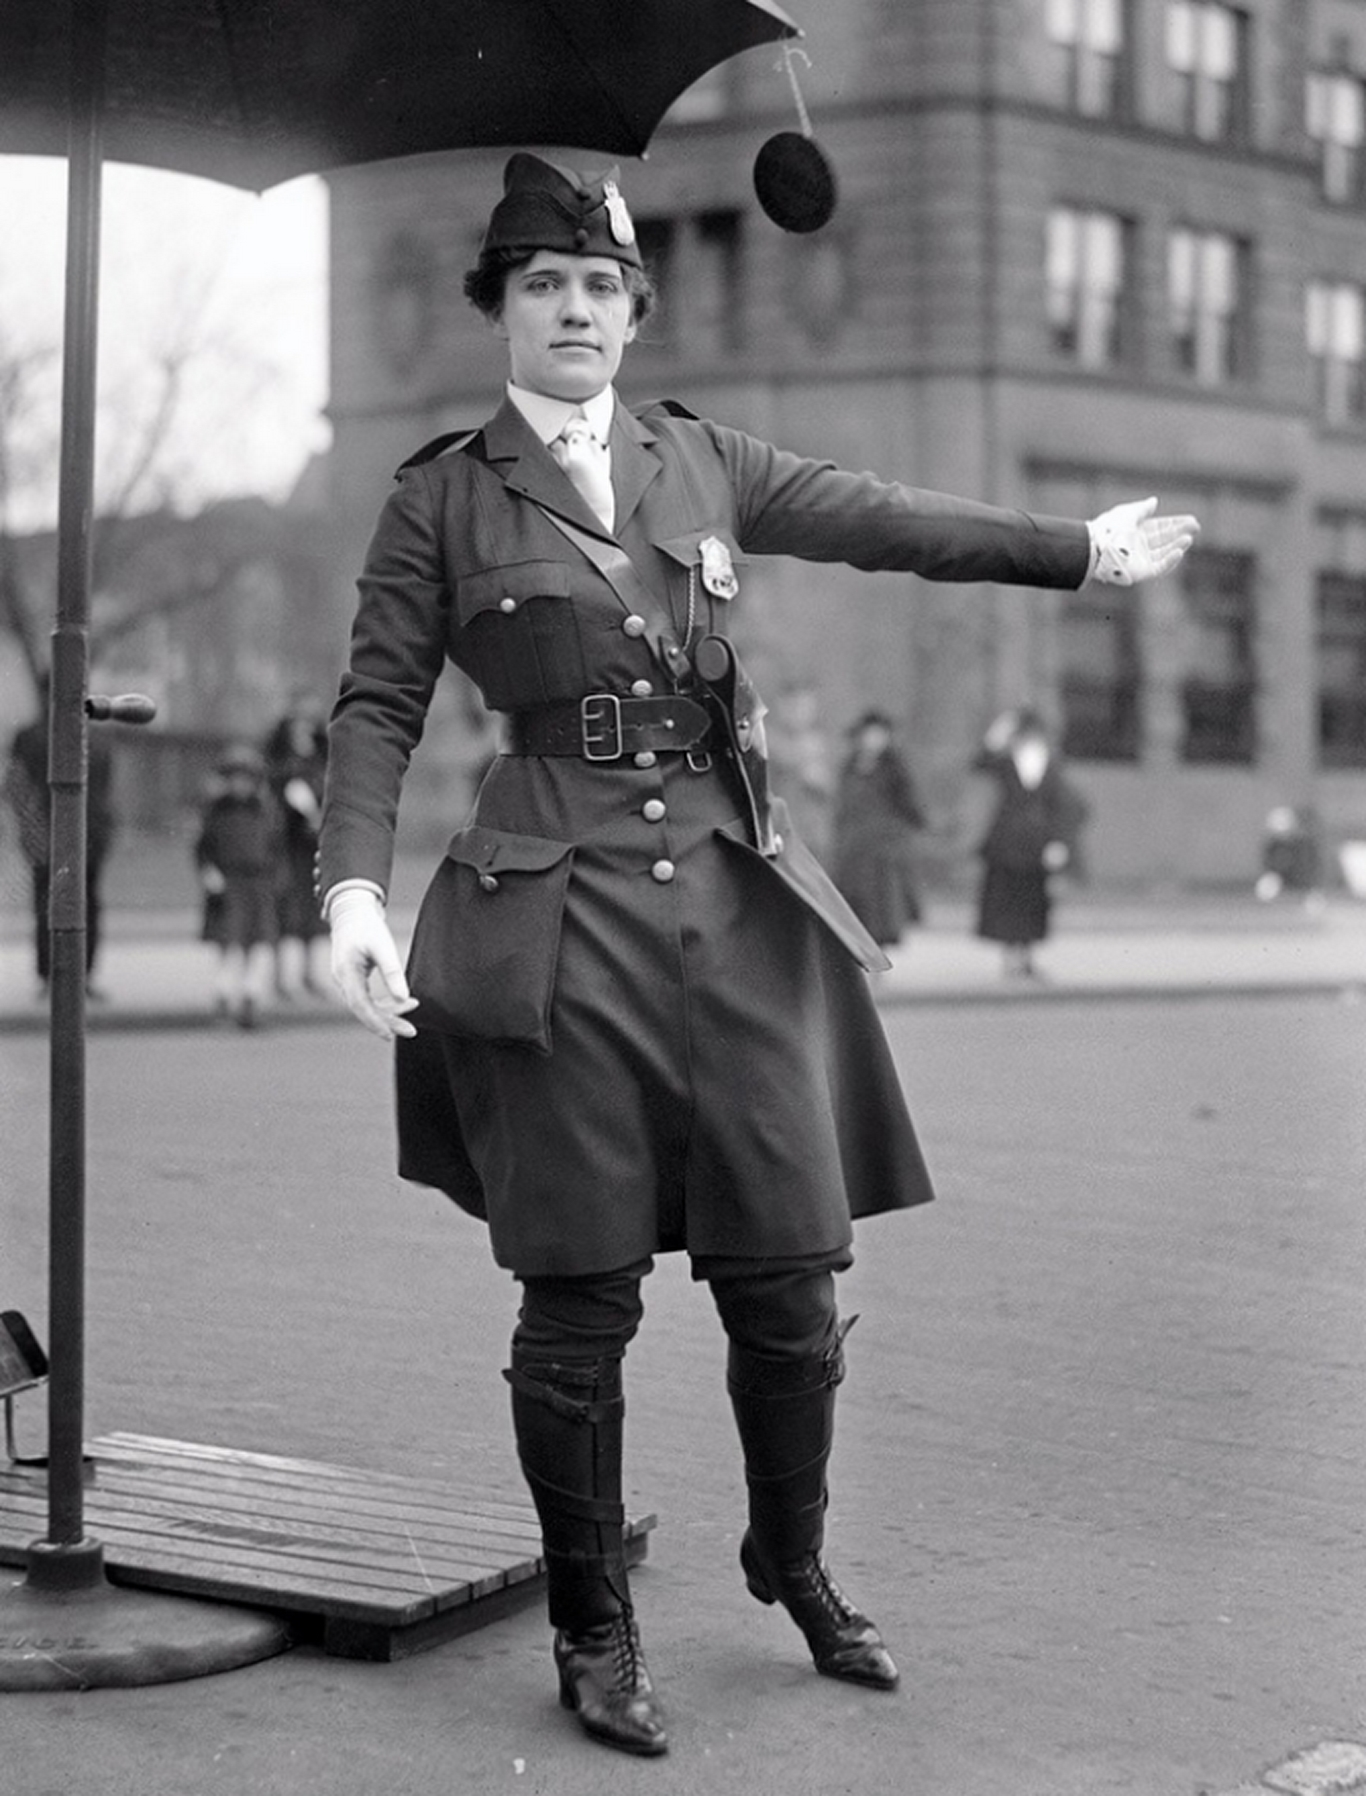 leola-n-king-america-first-female-traffic-cop-1918